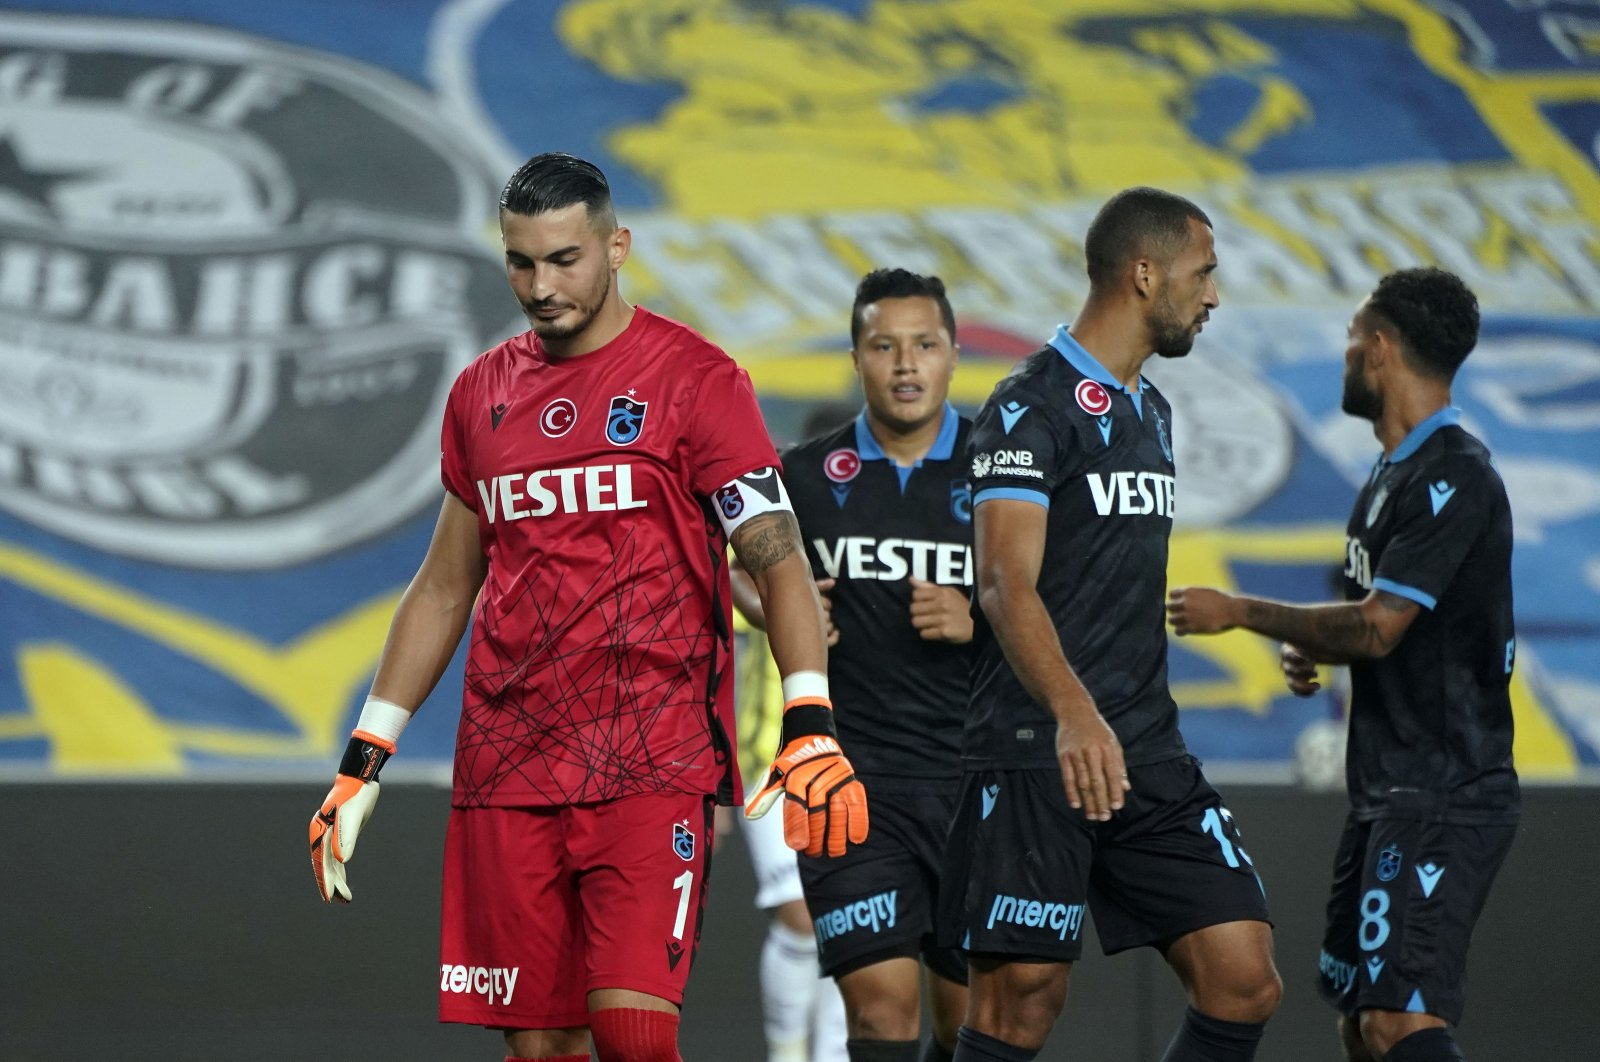 Trabzonspor goalkeeper Uğurcan Çakır (L) looks dejected after the Süper Lig match against Fenerbahçe, in Istanbul, Turkey, Oct. 25, 2020. (IHA Photo)